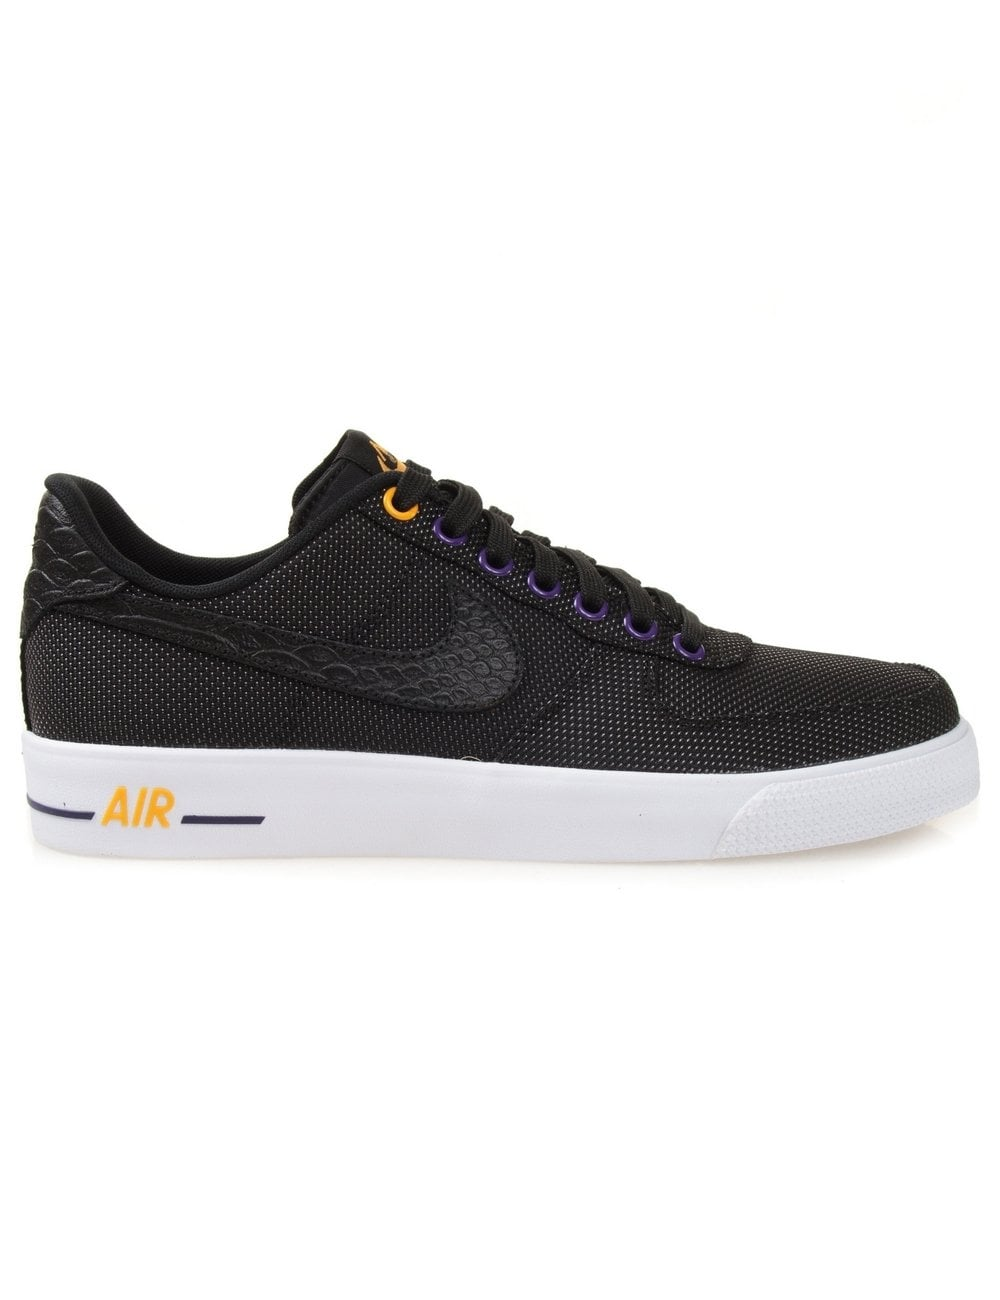 99cda9726bc4 Nike Air Force 1 AC Prm QS - Black - Trainers from Fat Buddha Store UK